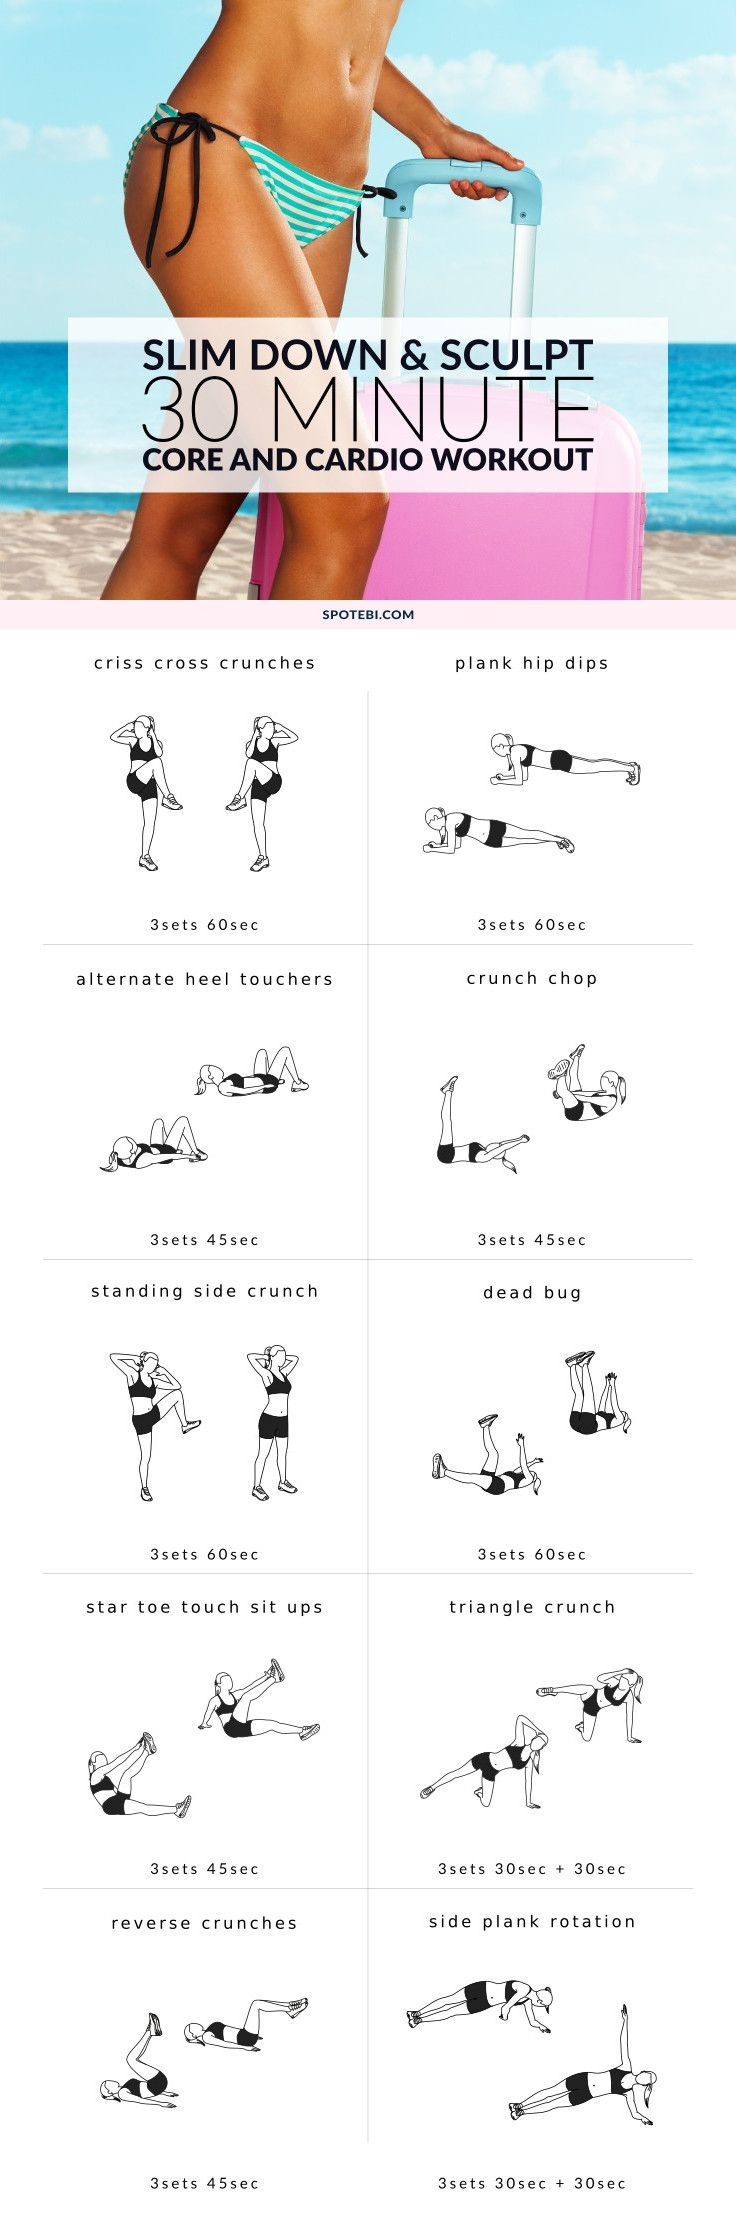 Tone your core, tighten your tummy and trim body fat with this 30-minute workout. A no-equipment do-anywhere circuit designed to slim down your waist and sculpt a sexy, toned body. http://www.spotebi.com/workout-routines/slim-down-sculpt-30-minute-workout/